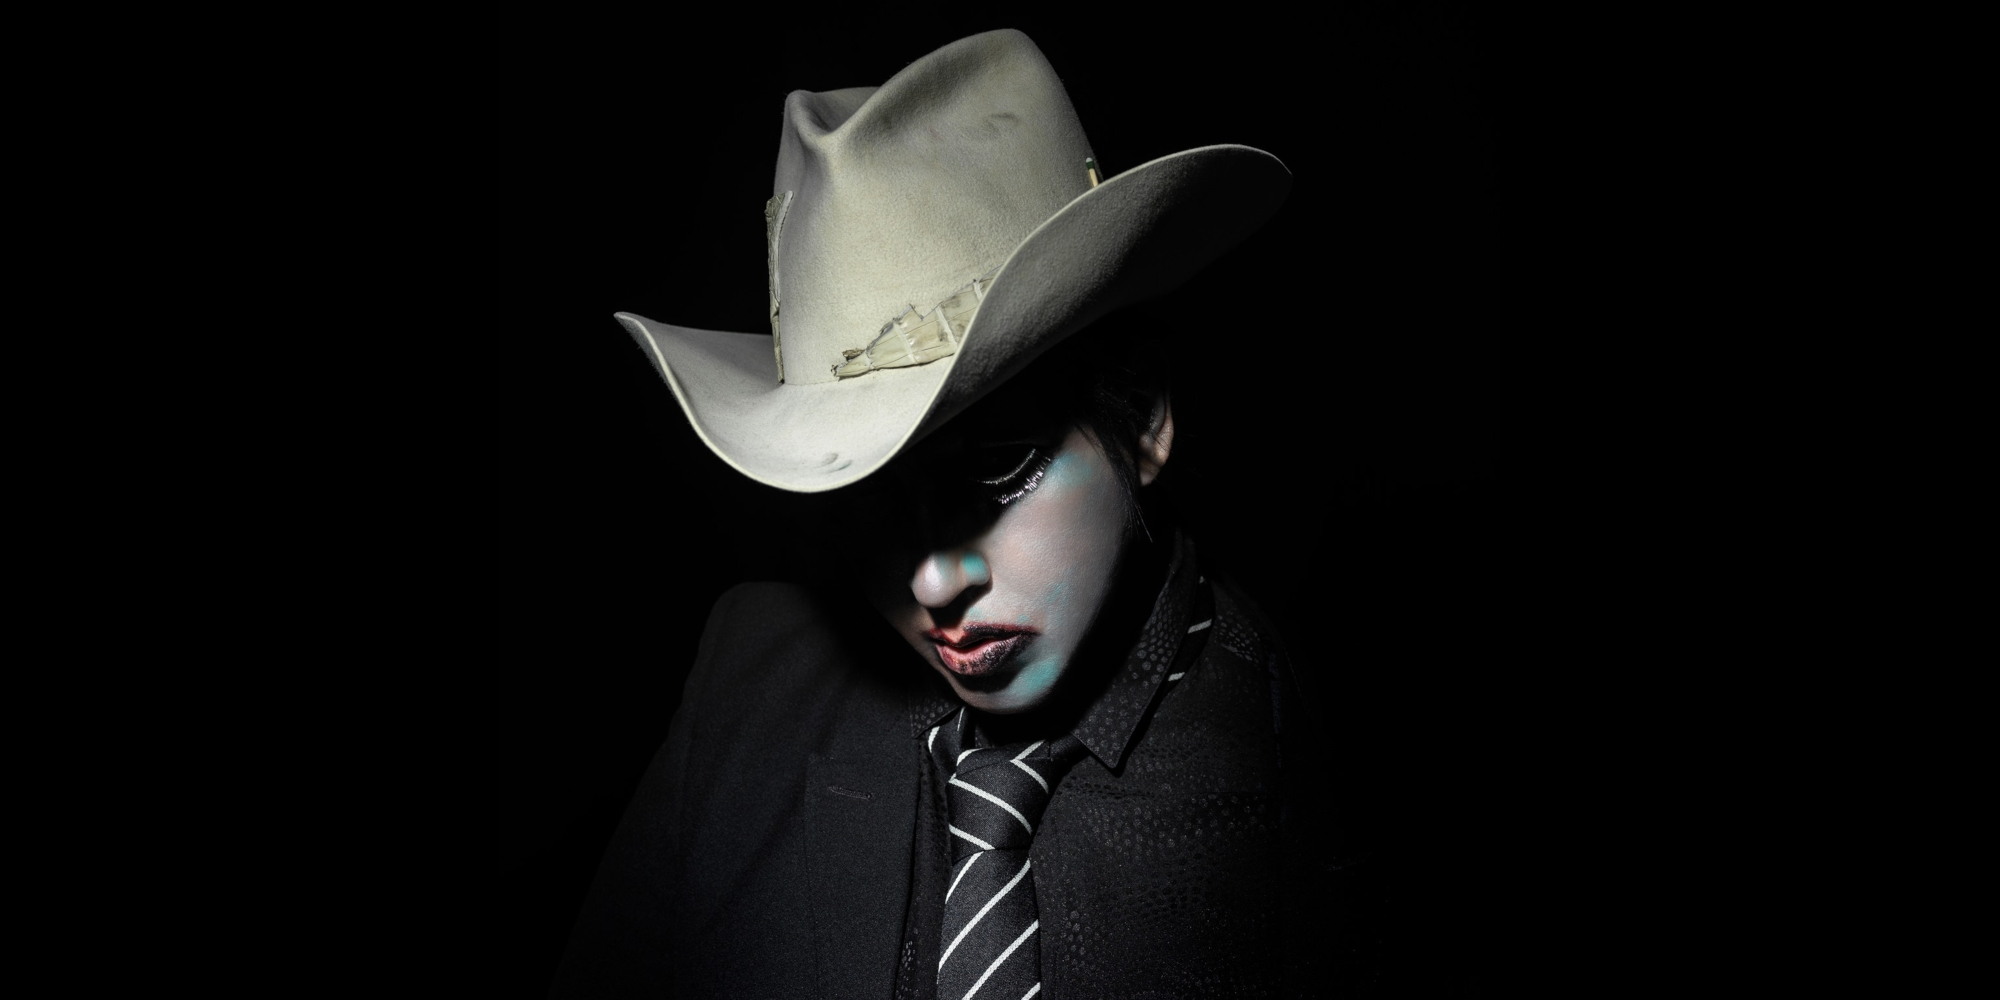 marilyn manson clip inedit single we are chaos